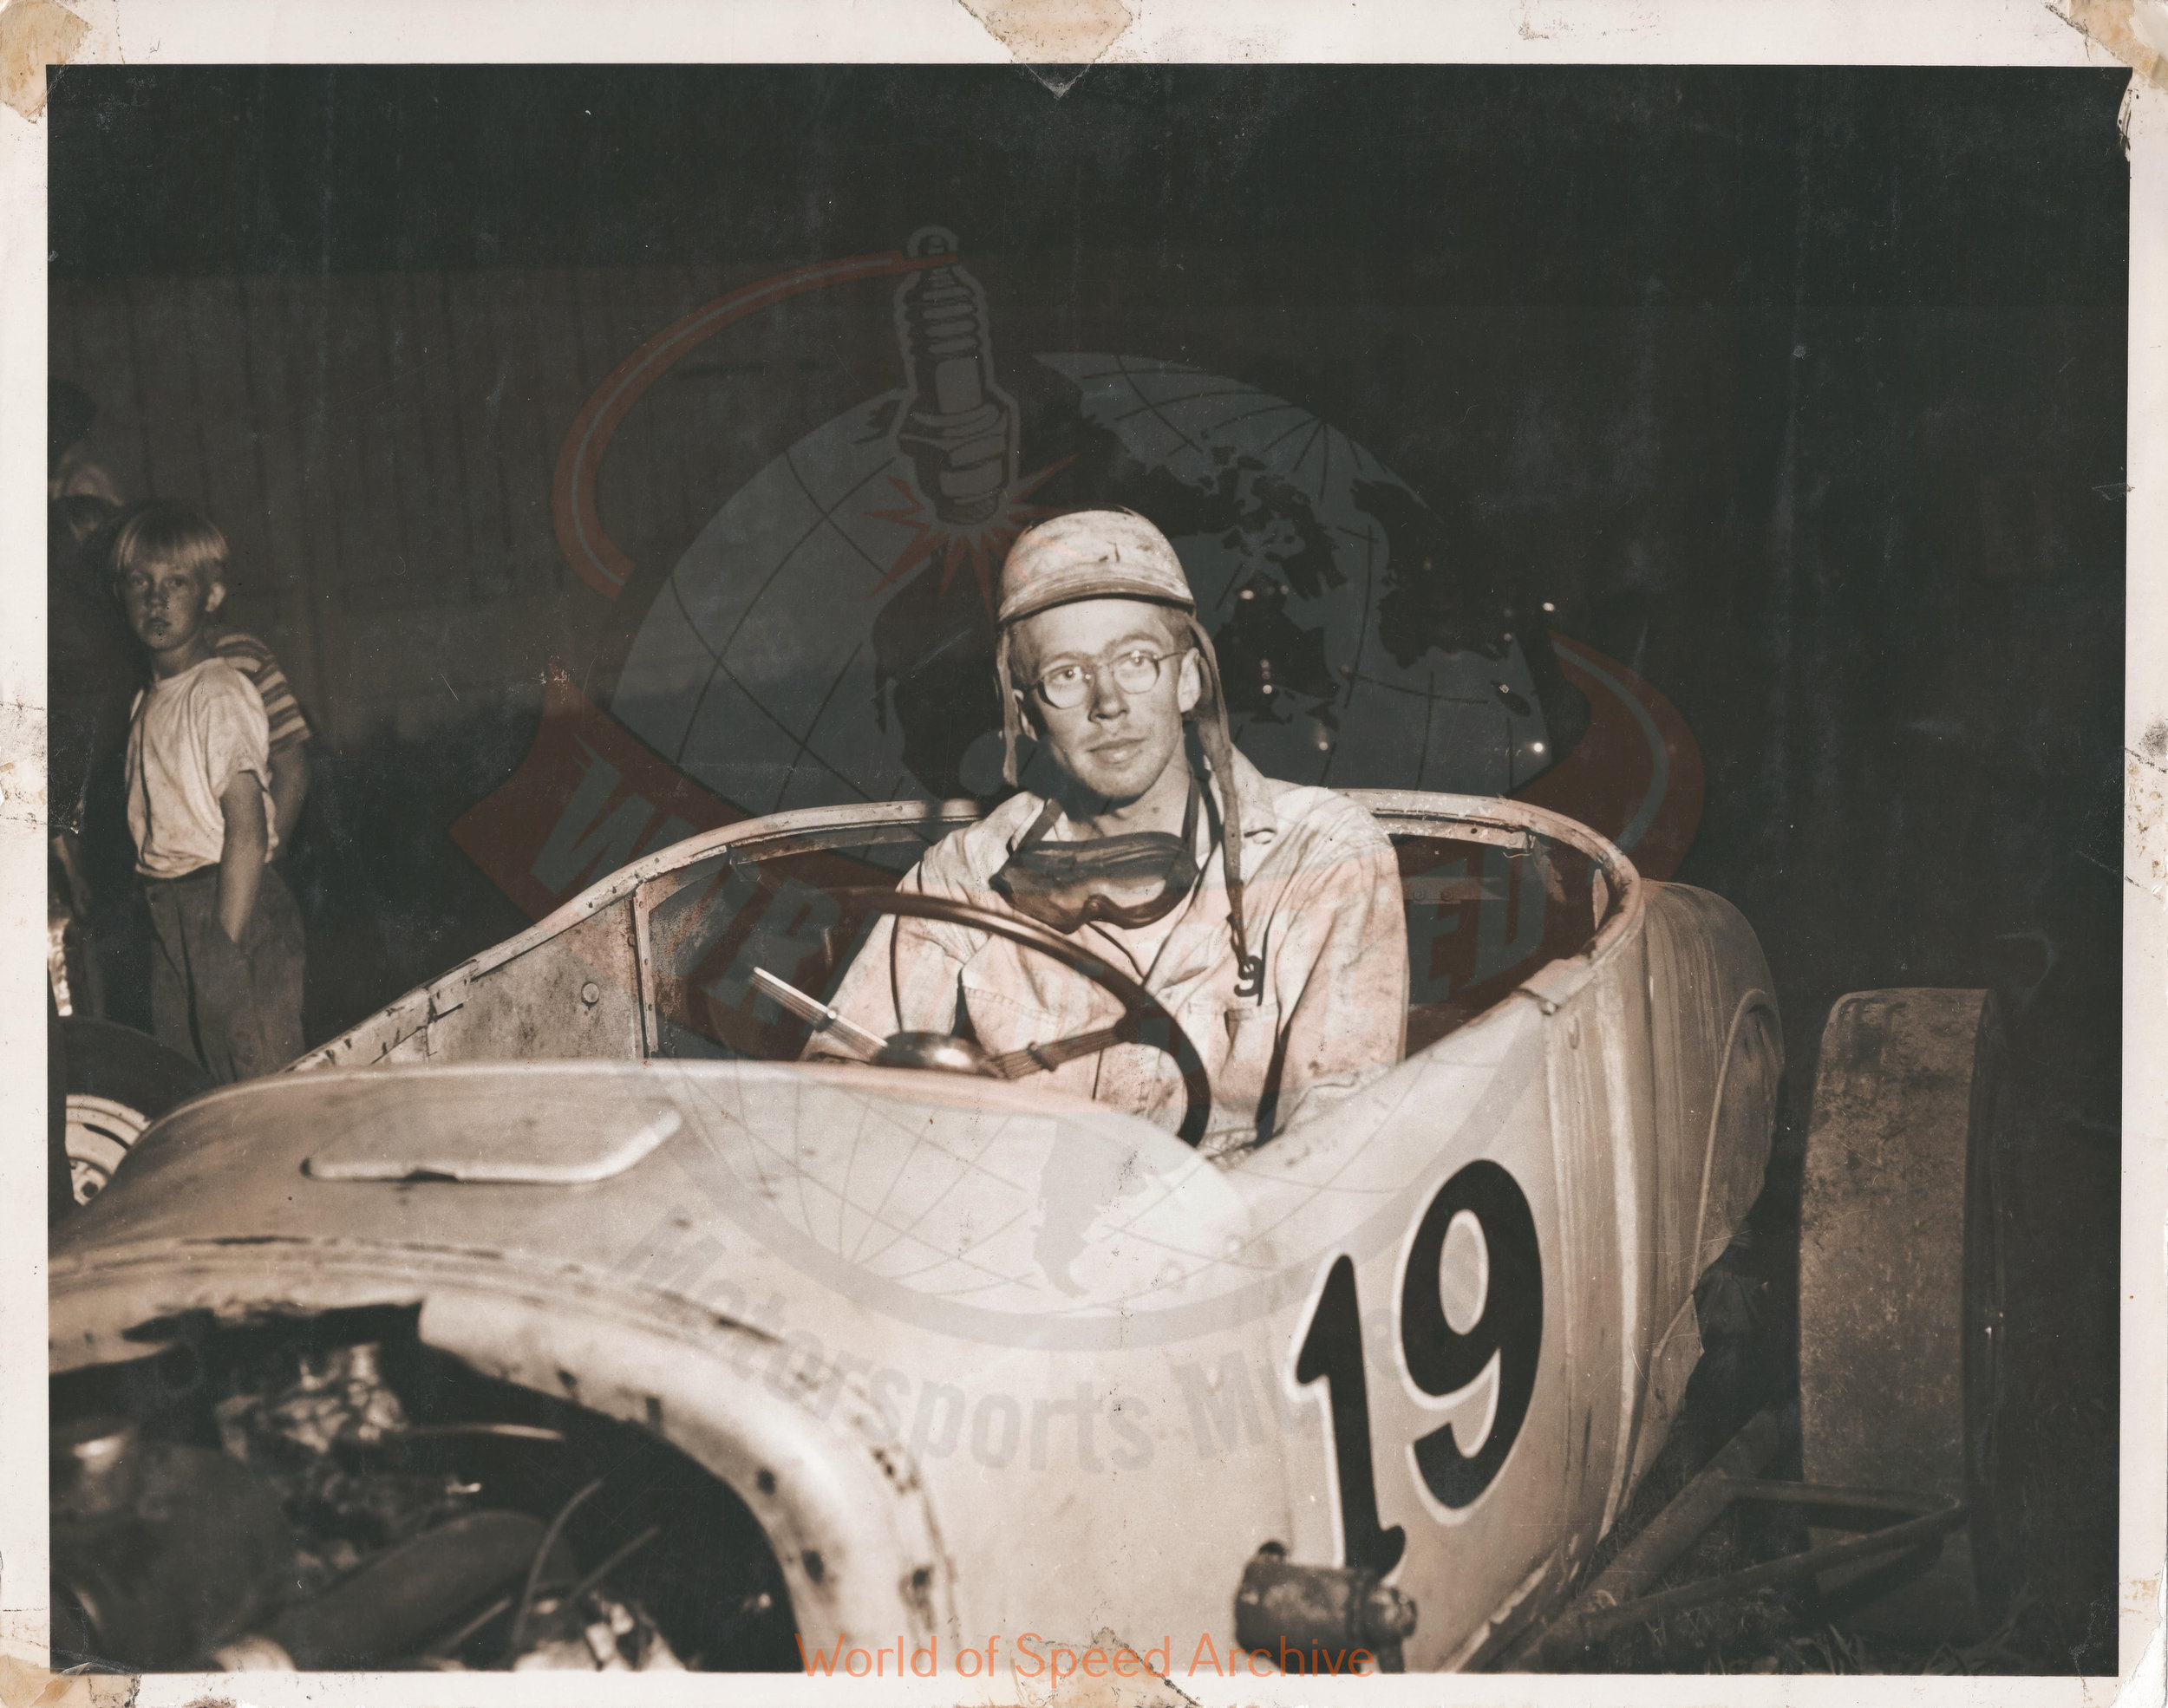 JG.04.A - Jack Greiner's first race, Salem Hollywood Bowl 1950